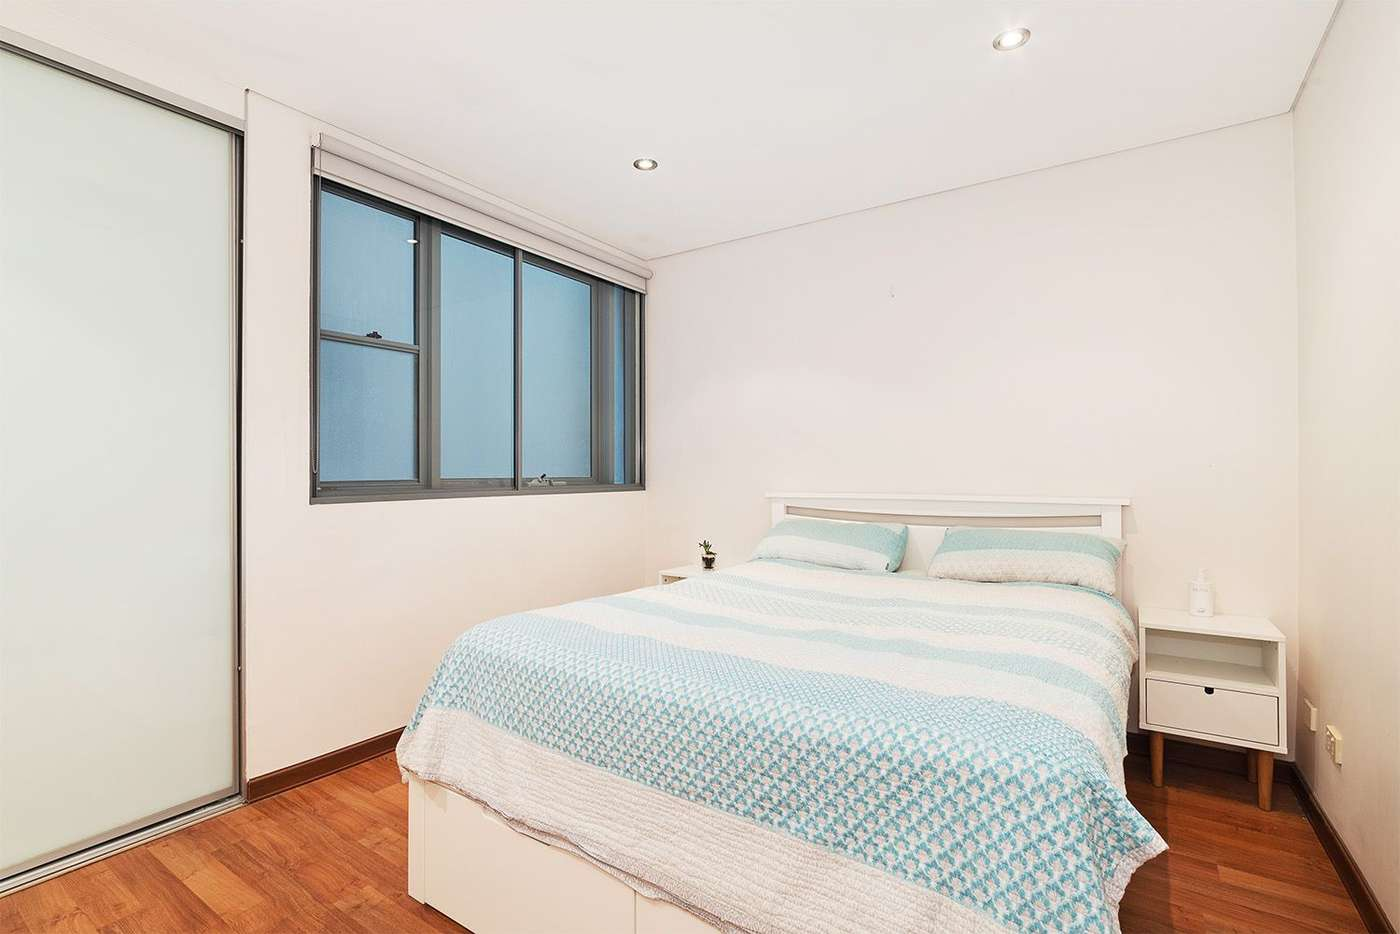 Fifth view of Homely apartment listing, 9/238 William Street, Potts Point NSW 2011